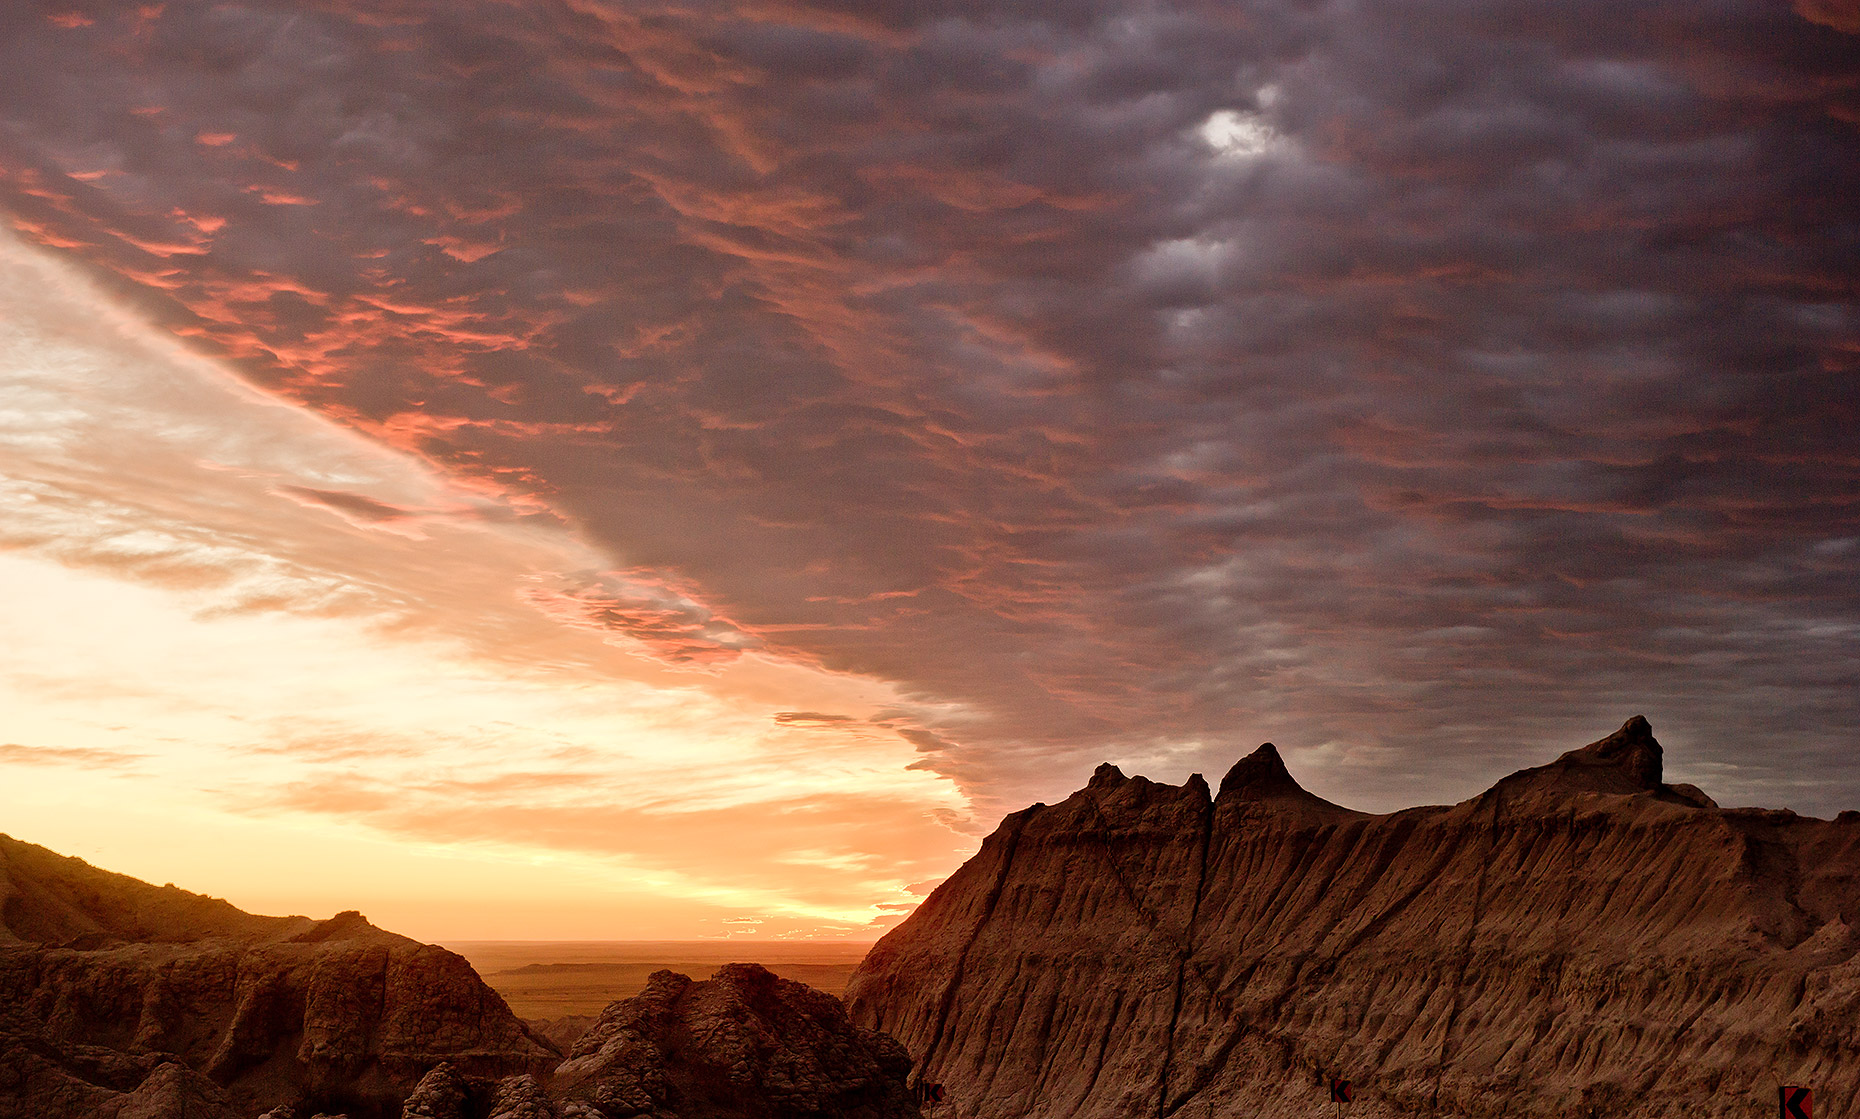 Sunrise in the Badlands